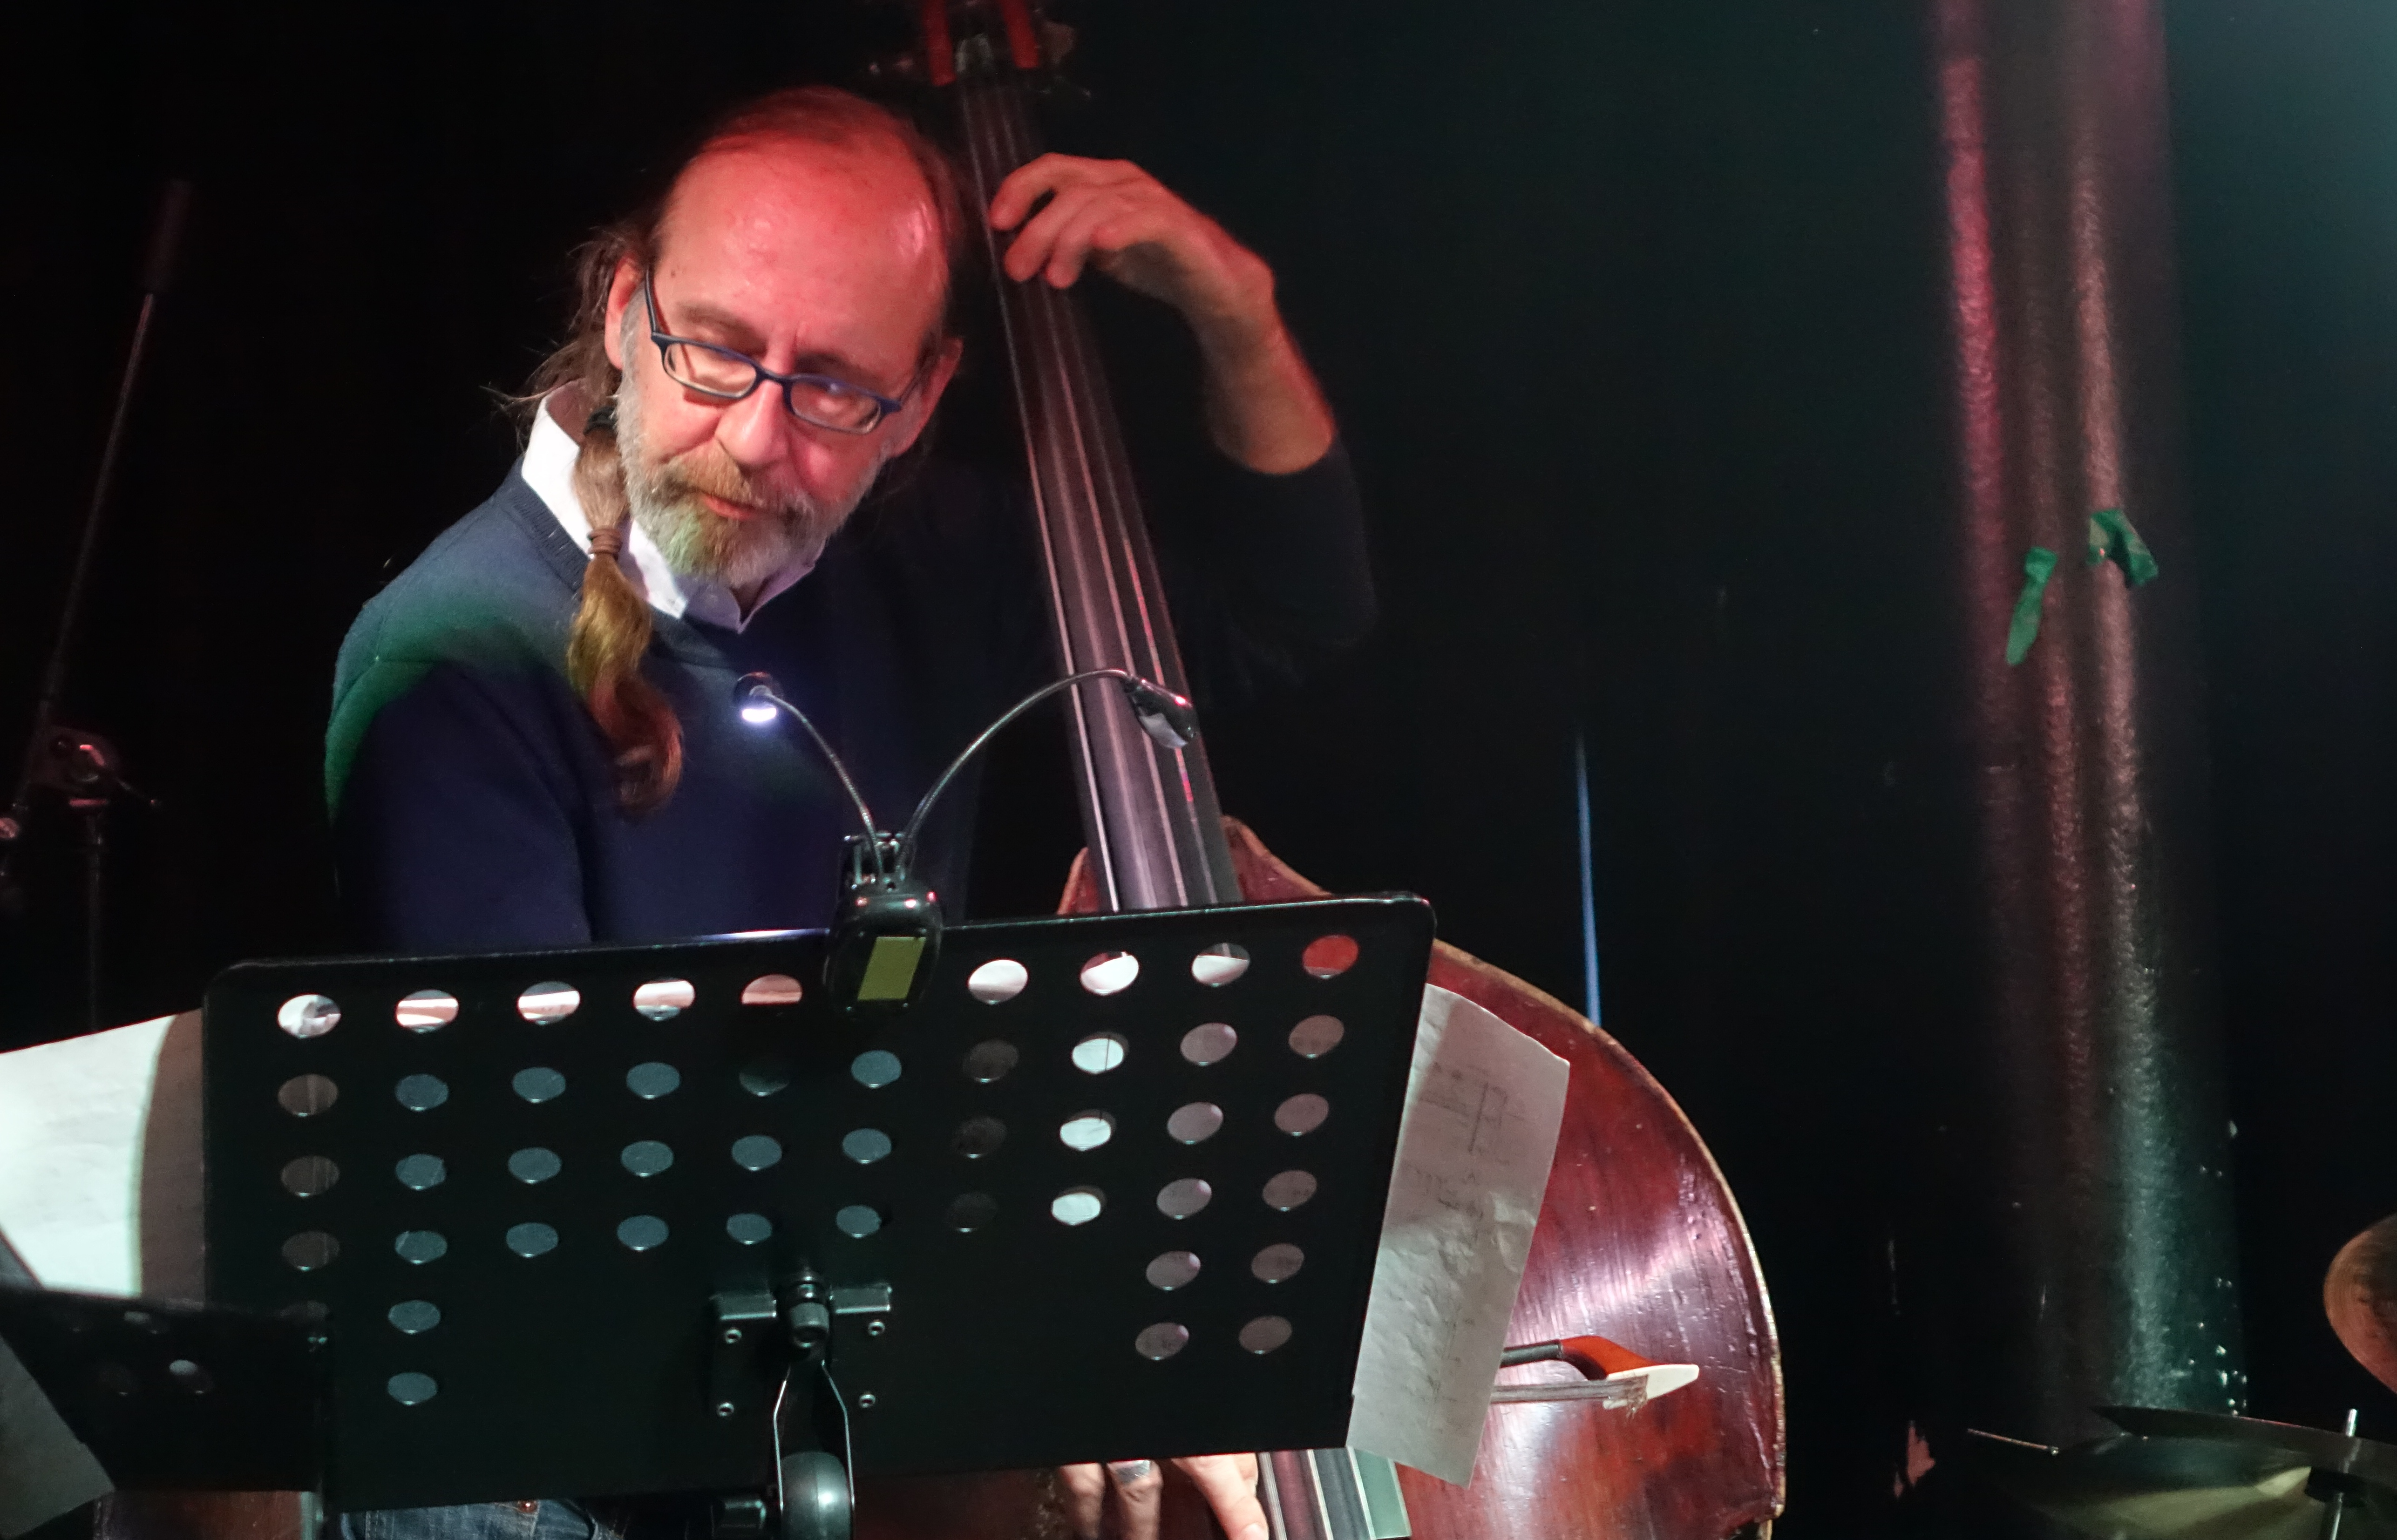 Drew Gress at the Vortex, London in May 2019